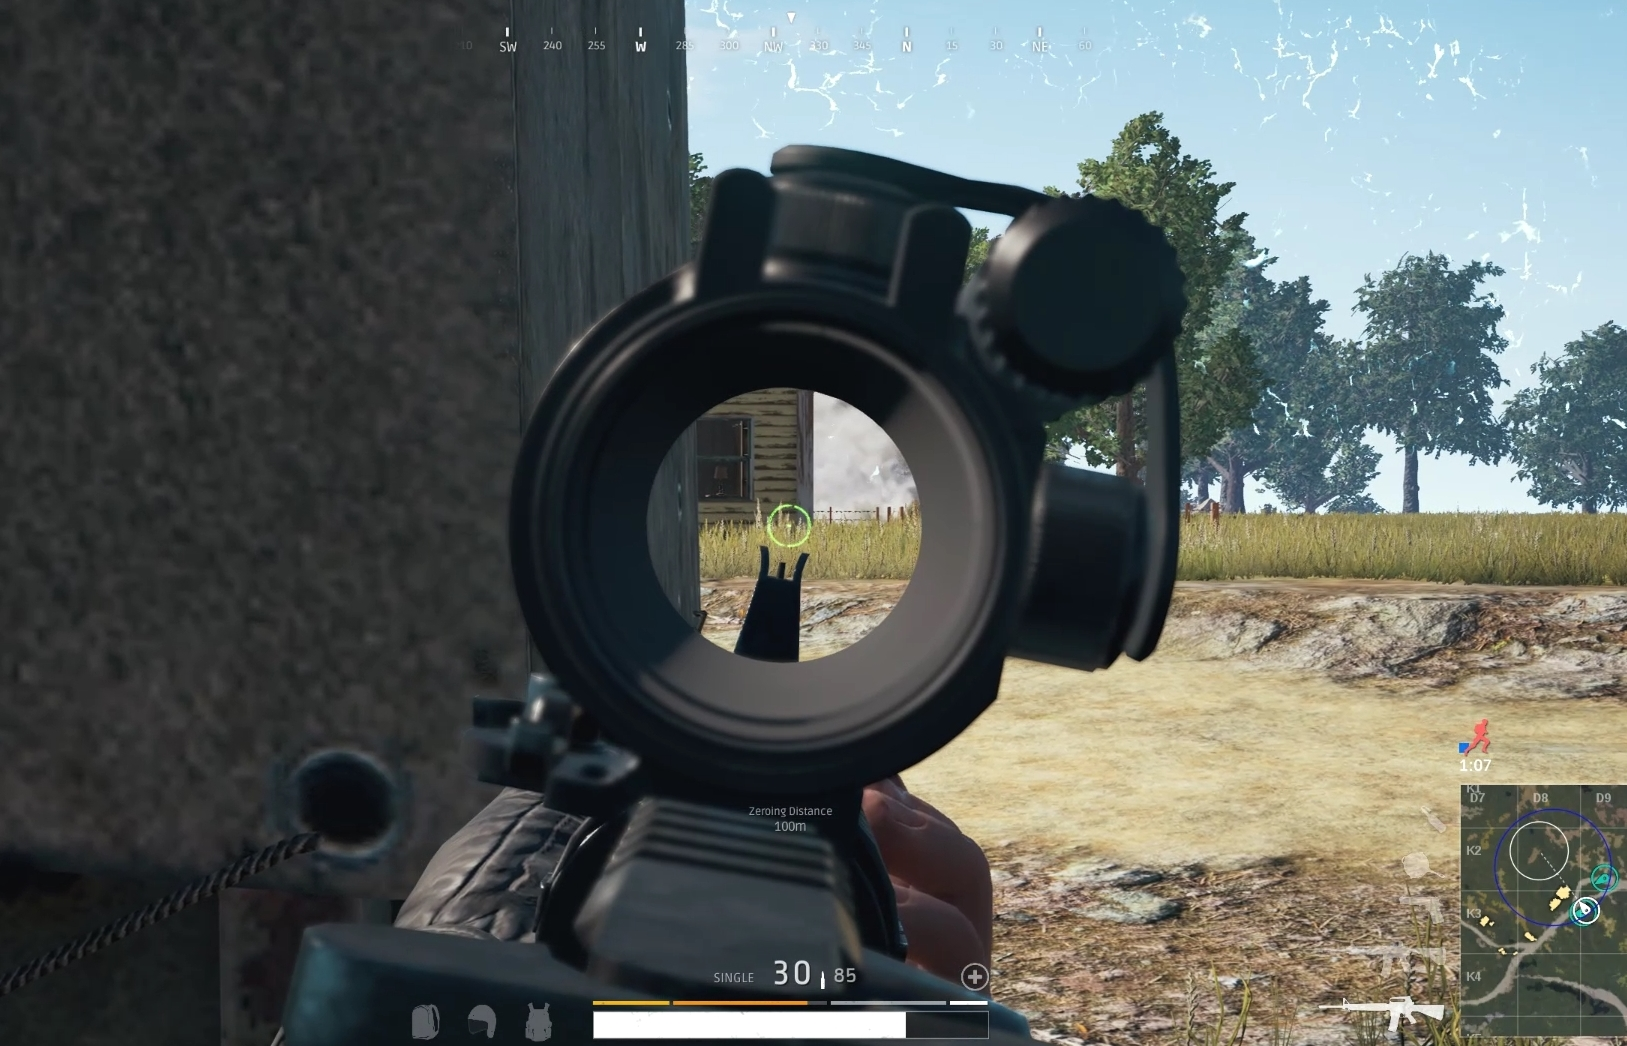 Pubg The Best Weapons In The Game Pc Xbox One: First-person Is A Great Way To Play PlayerUnknown's